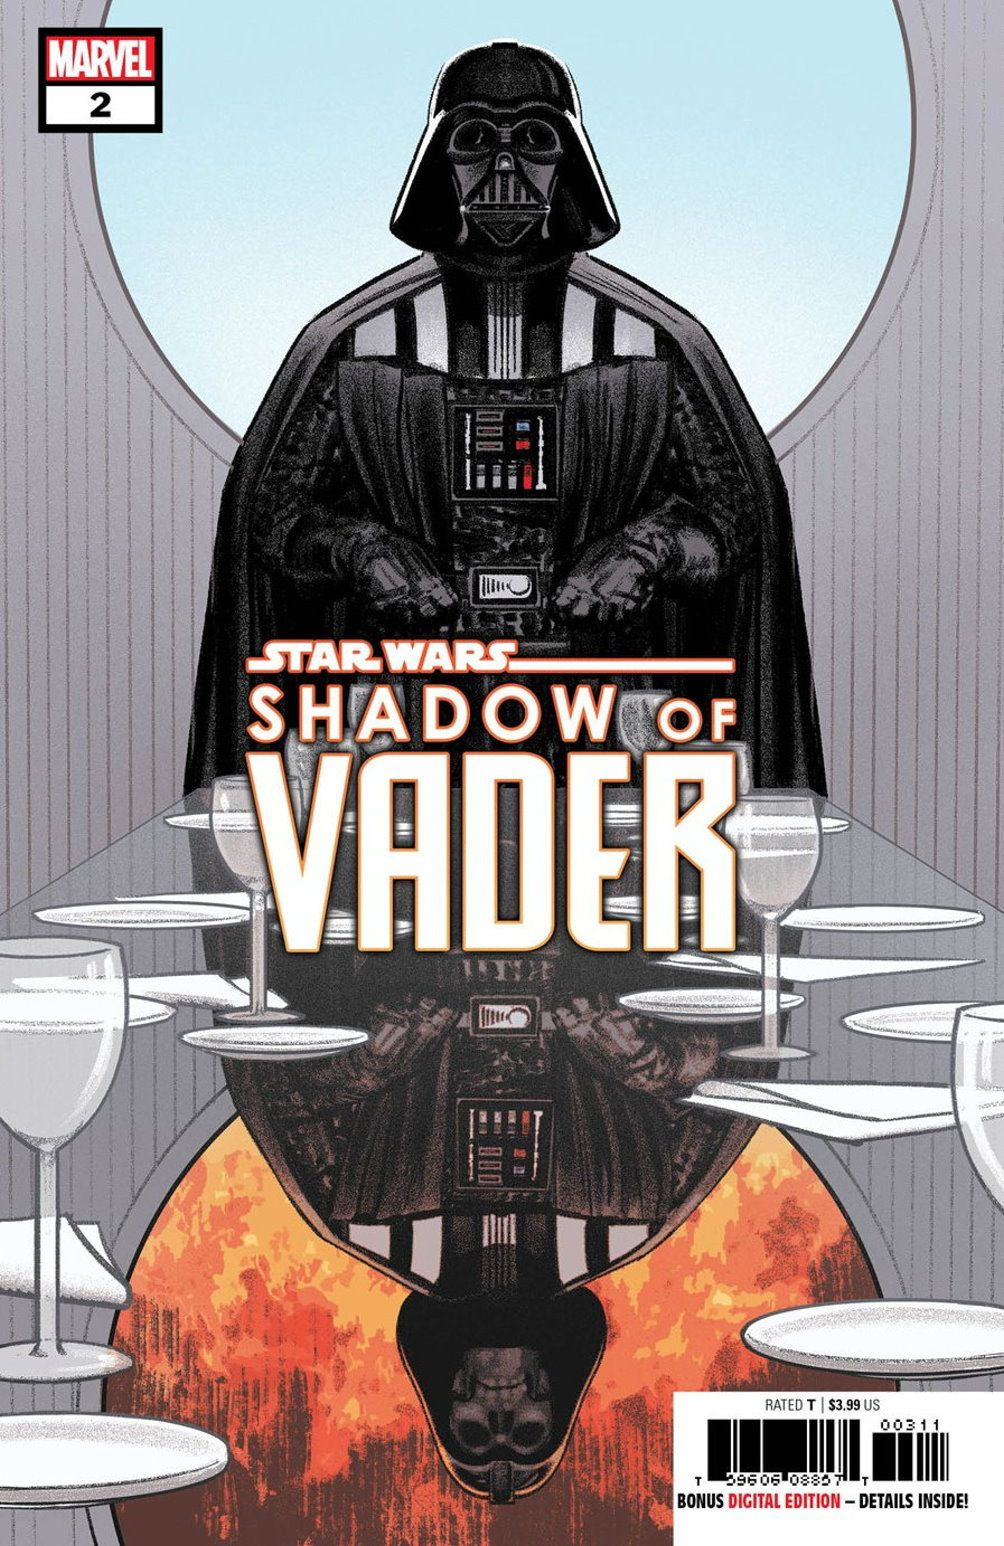 Darth Vader stands at the head of a reflective table in Cloud City, on the cover of Shadow of Vader #2, which would have been written by Chuch Wendig. Marvel Comics (never released).